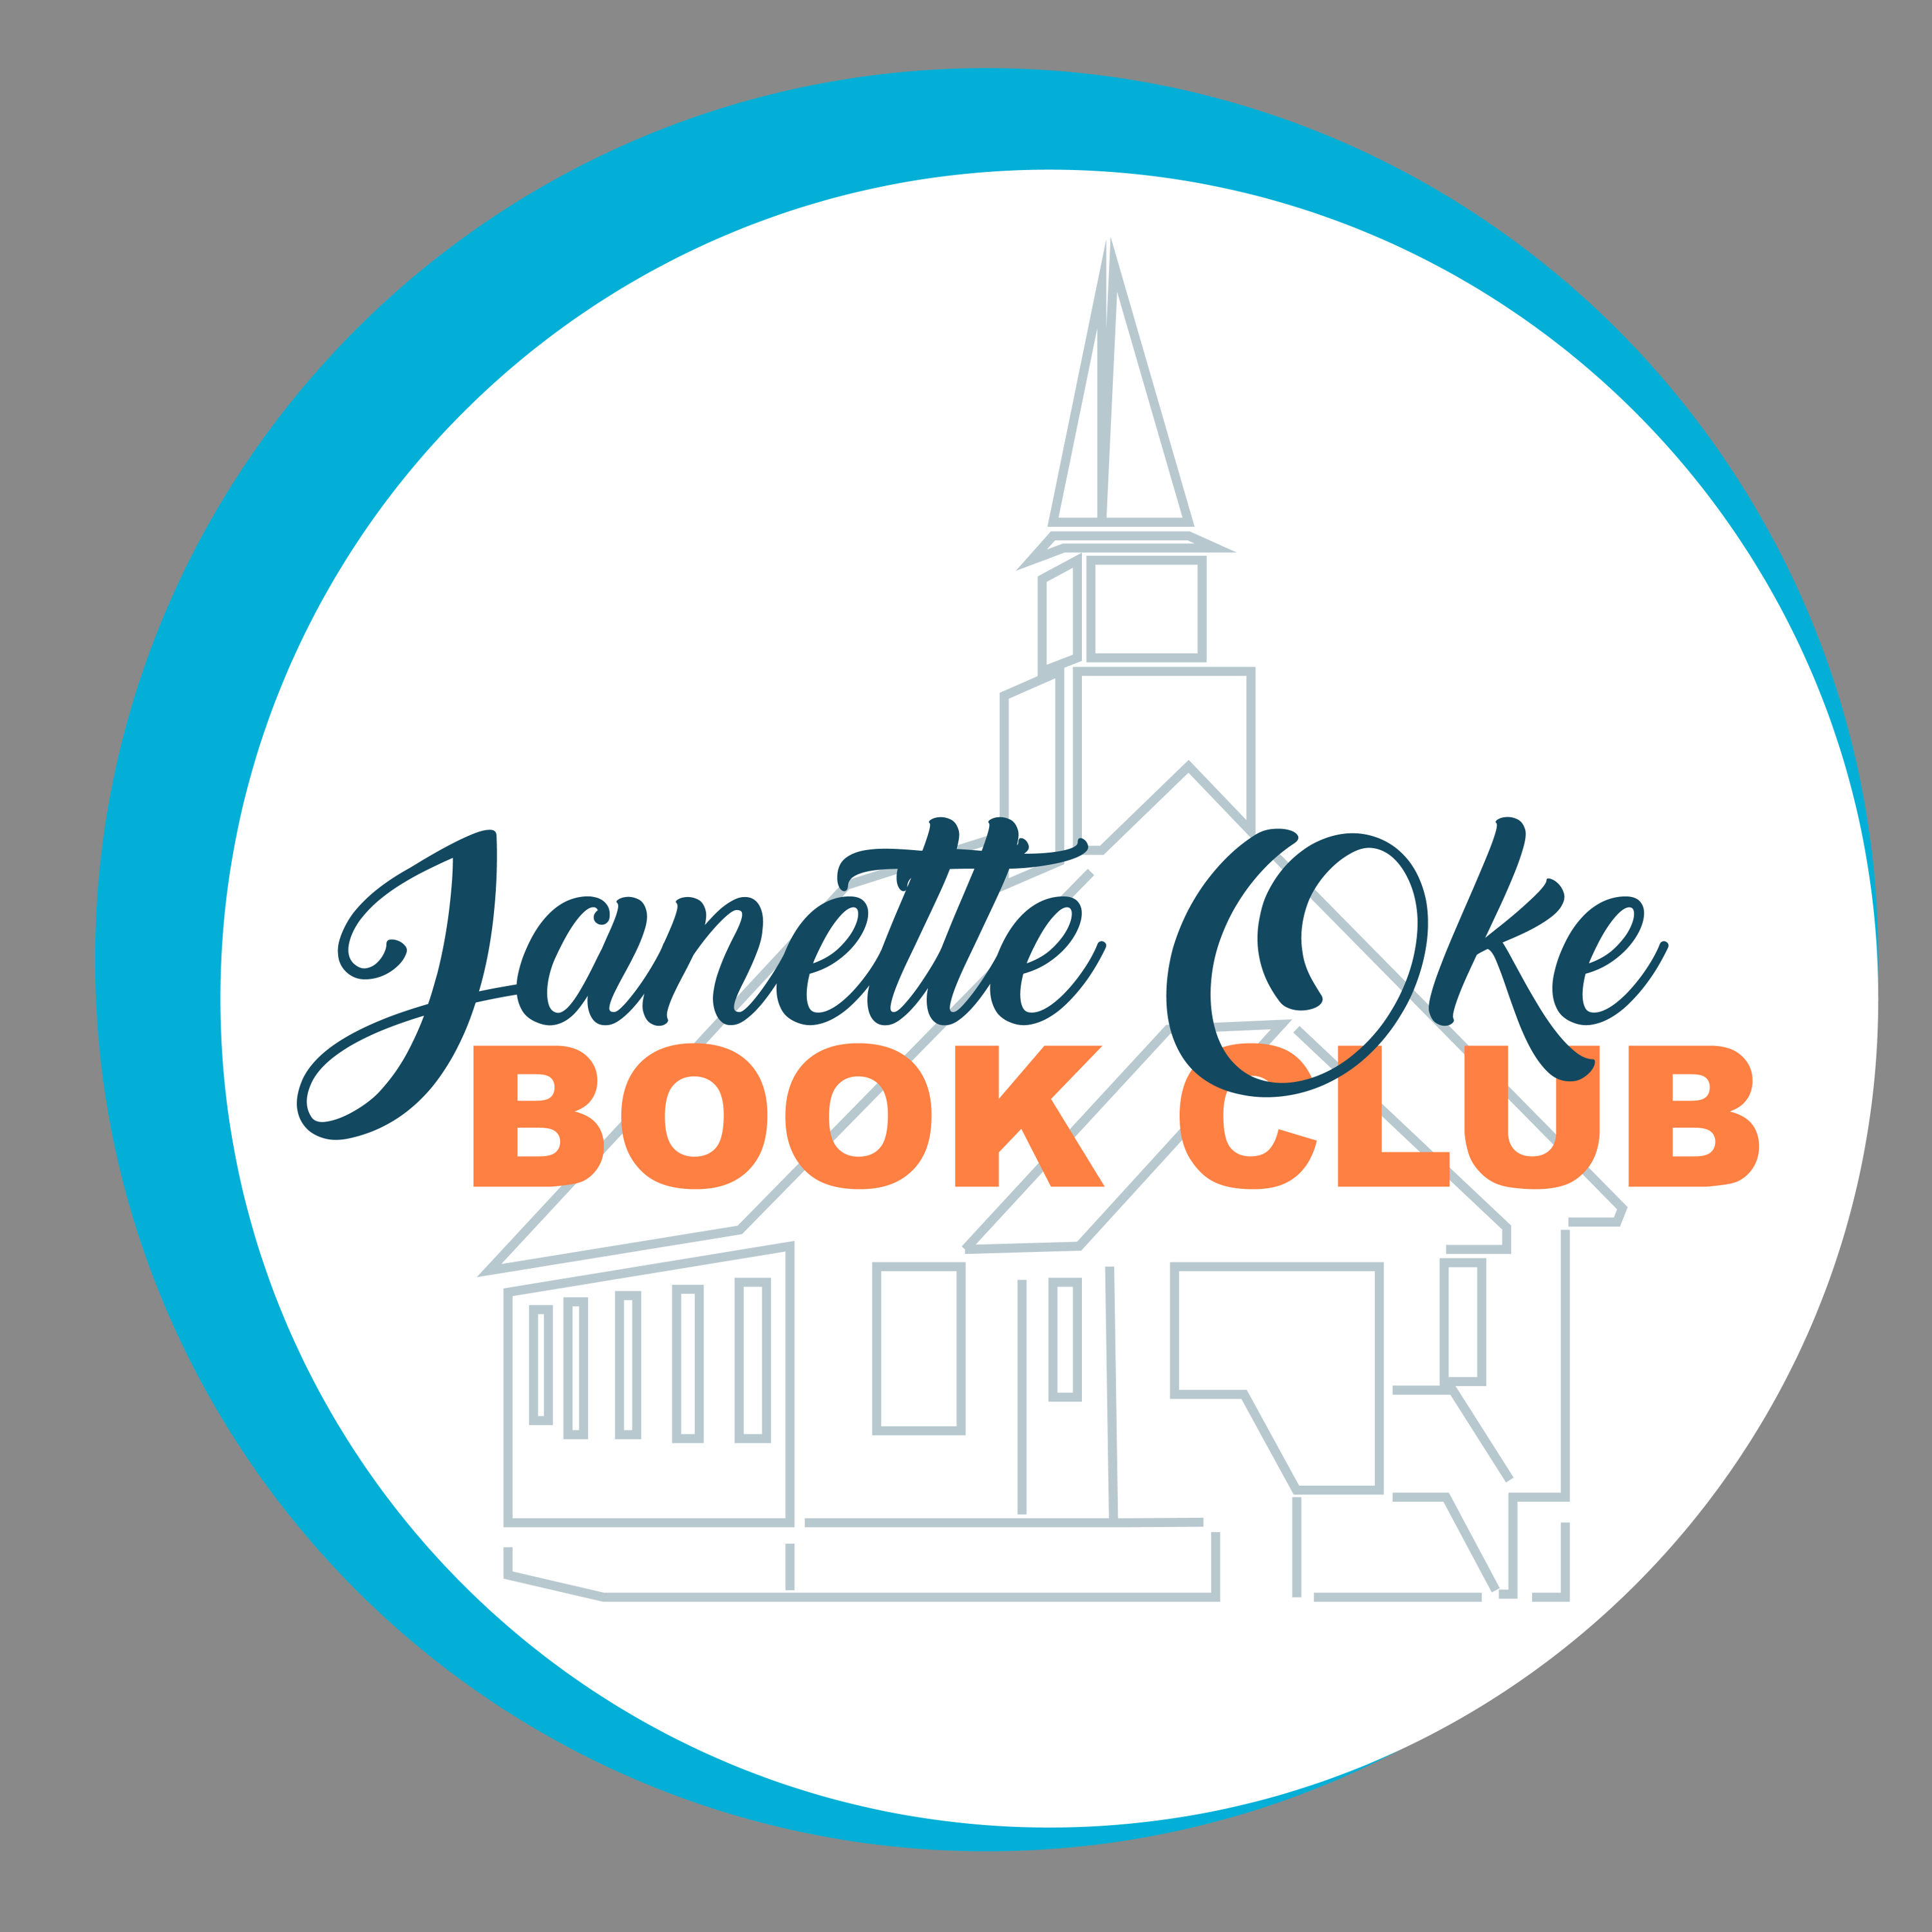 The Janette Oke Book Club